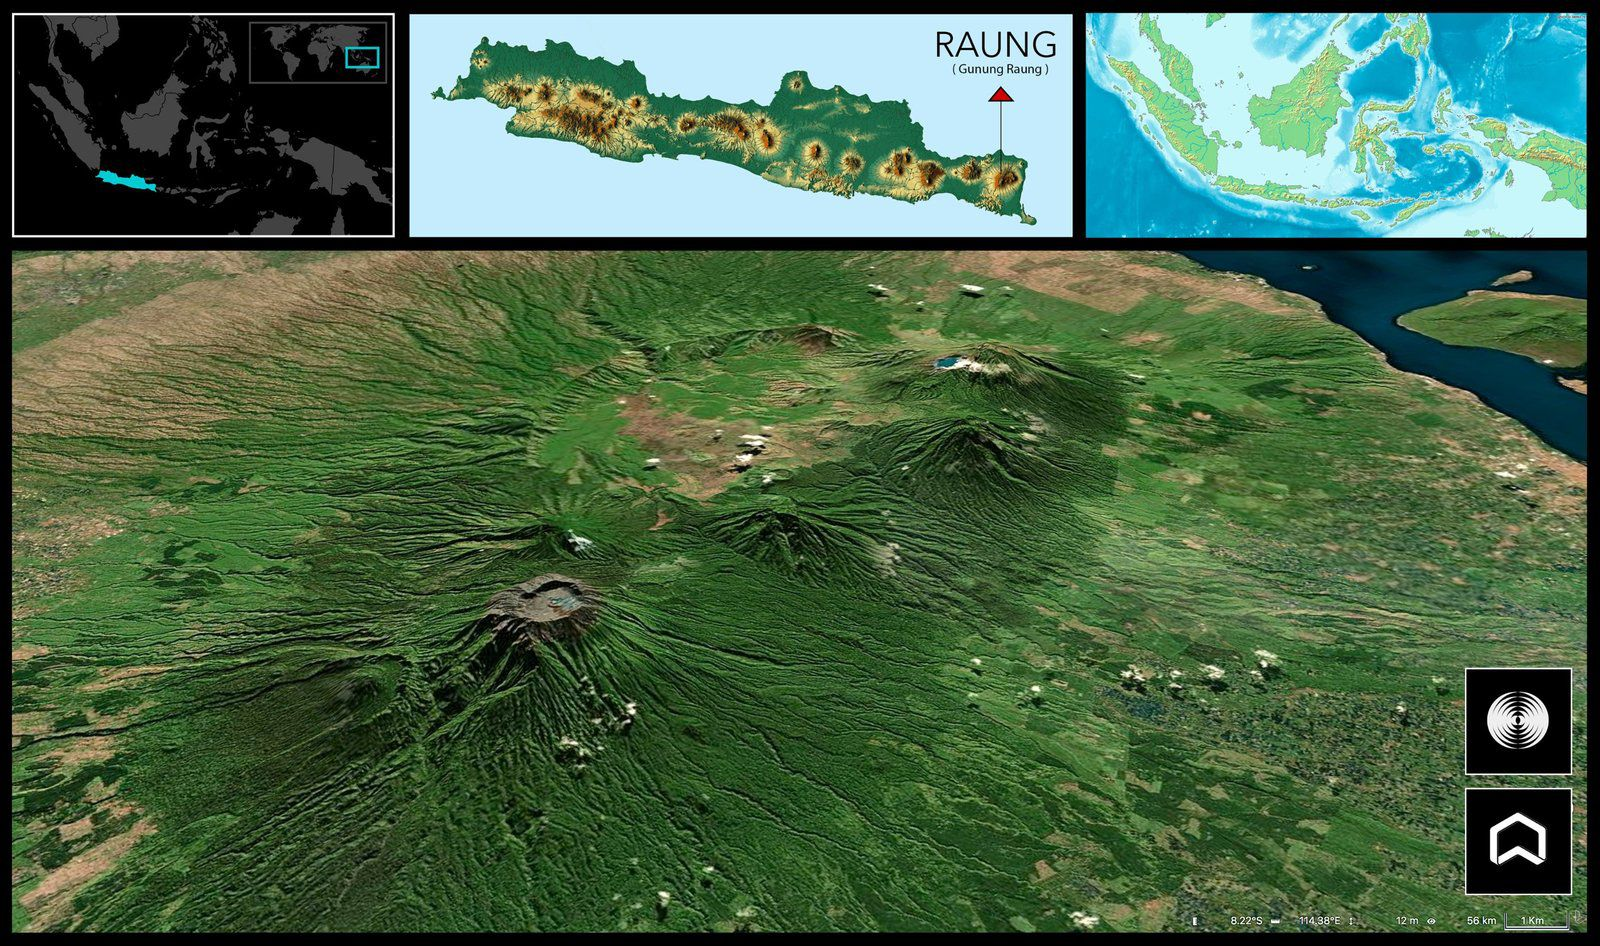 Raung - location and 3D modeling - From left to right: Raung and Suket, then on the SE edge of the Kendeng caldera, Jampit, Ranteh and Merapi / Kawah ijen - Doc. nodo20chile - one click to enlarge